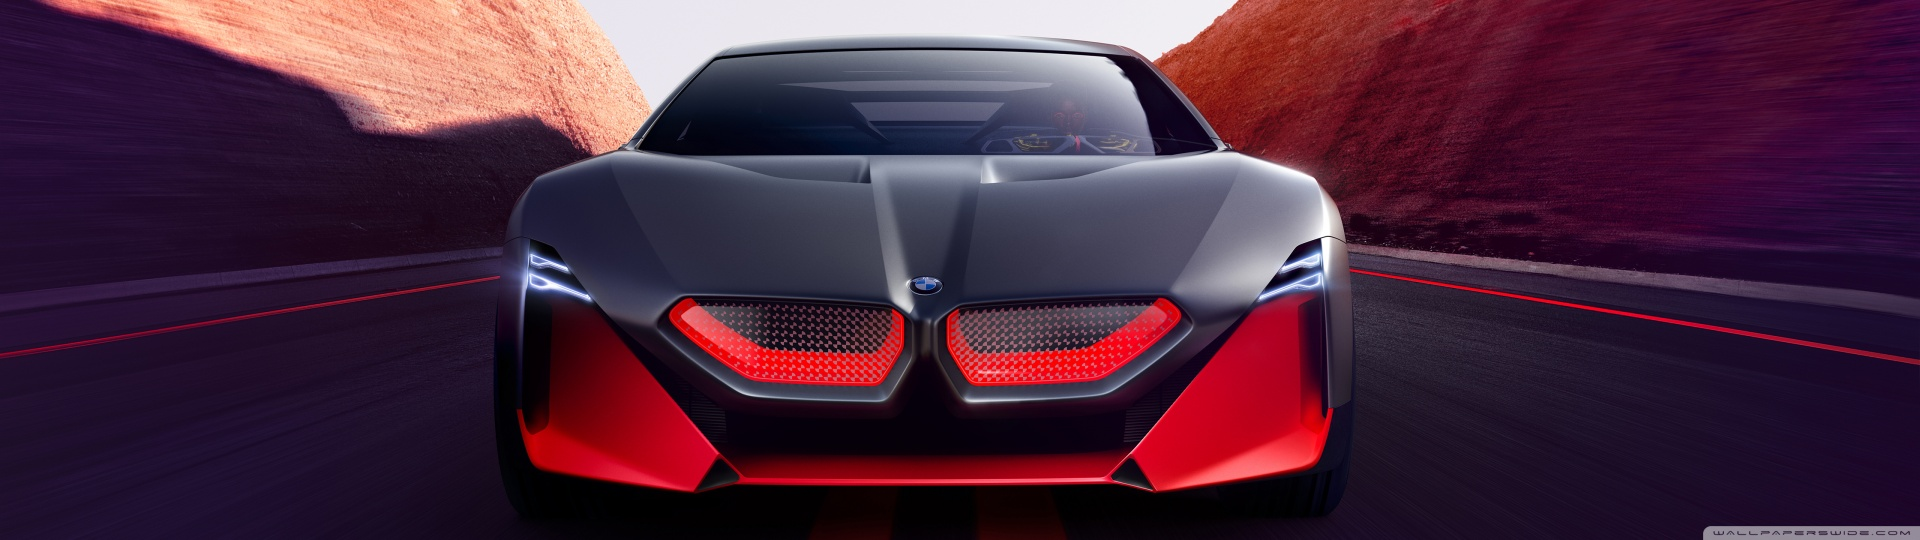 2019 BMW Vision M NEXT Sports Car Road 4K HD Desktop Wallpaper 1920x540